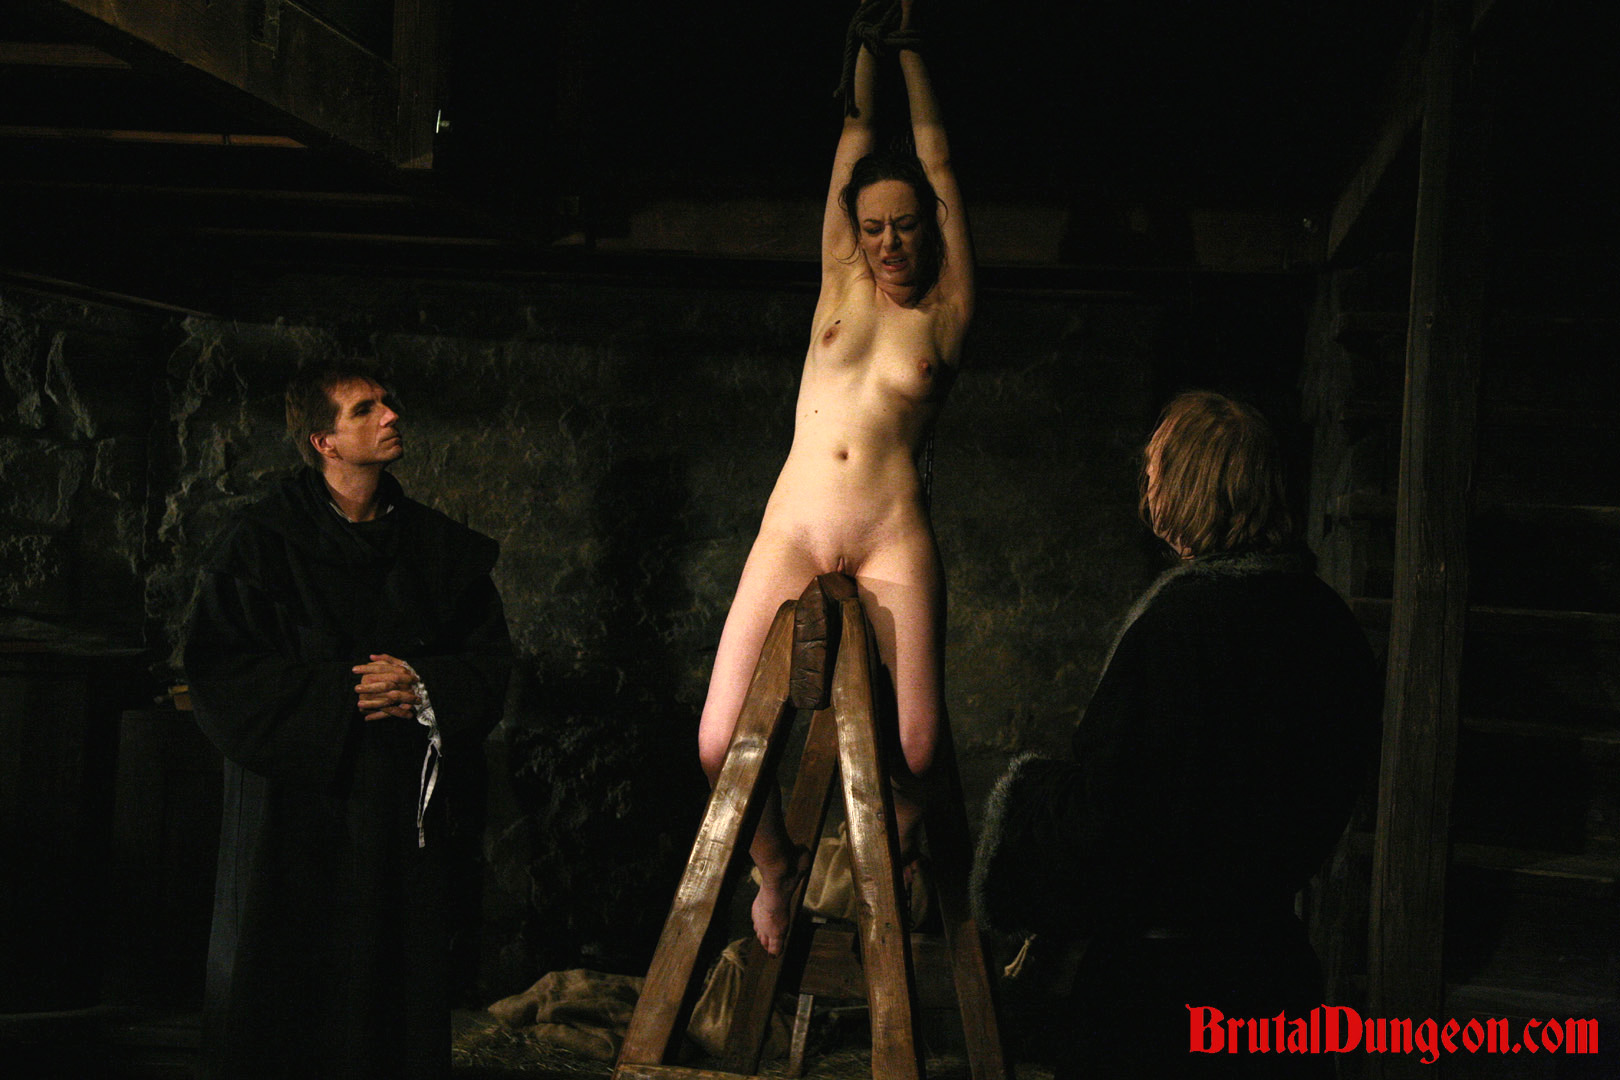 Brunette mathilda bondage gang bang. Good brunette Mathilda picked the wrong home to invade and steal from. It belongs to a dungeon Master. She endure imprisonment, BDSM gang bang, domination, rope bondage and suspension, spanking, slapping, humiliation, fingering, breast, nipple and pussy tormented with an interesting device and weights.